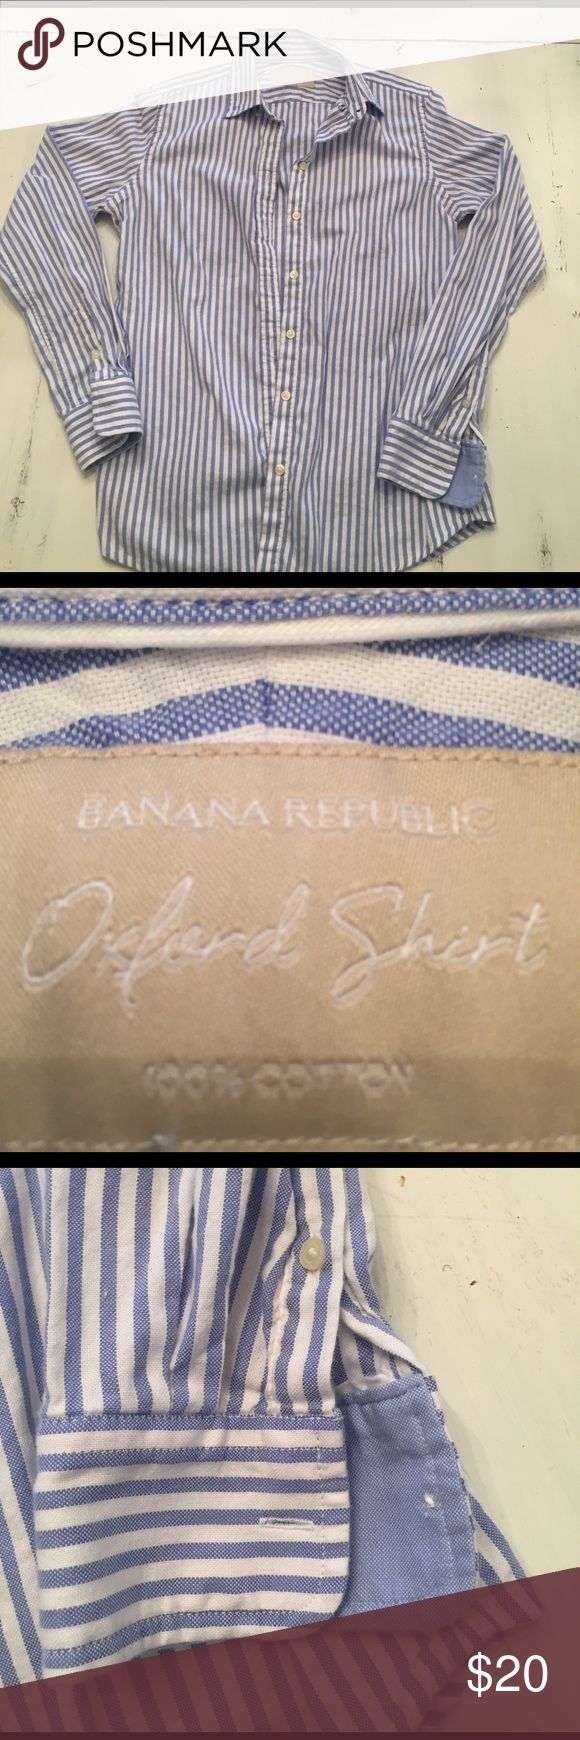 Banana Republic Oxford Shirt 100% cotton women's oxford shirt. Pretty blue and white stripes. Looks cute paired with a pair of white jeans and strappy sandals! Great for springtime weather! In great condition. Banana Republic Tops Button Down Shirts